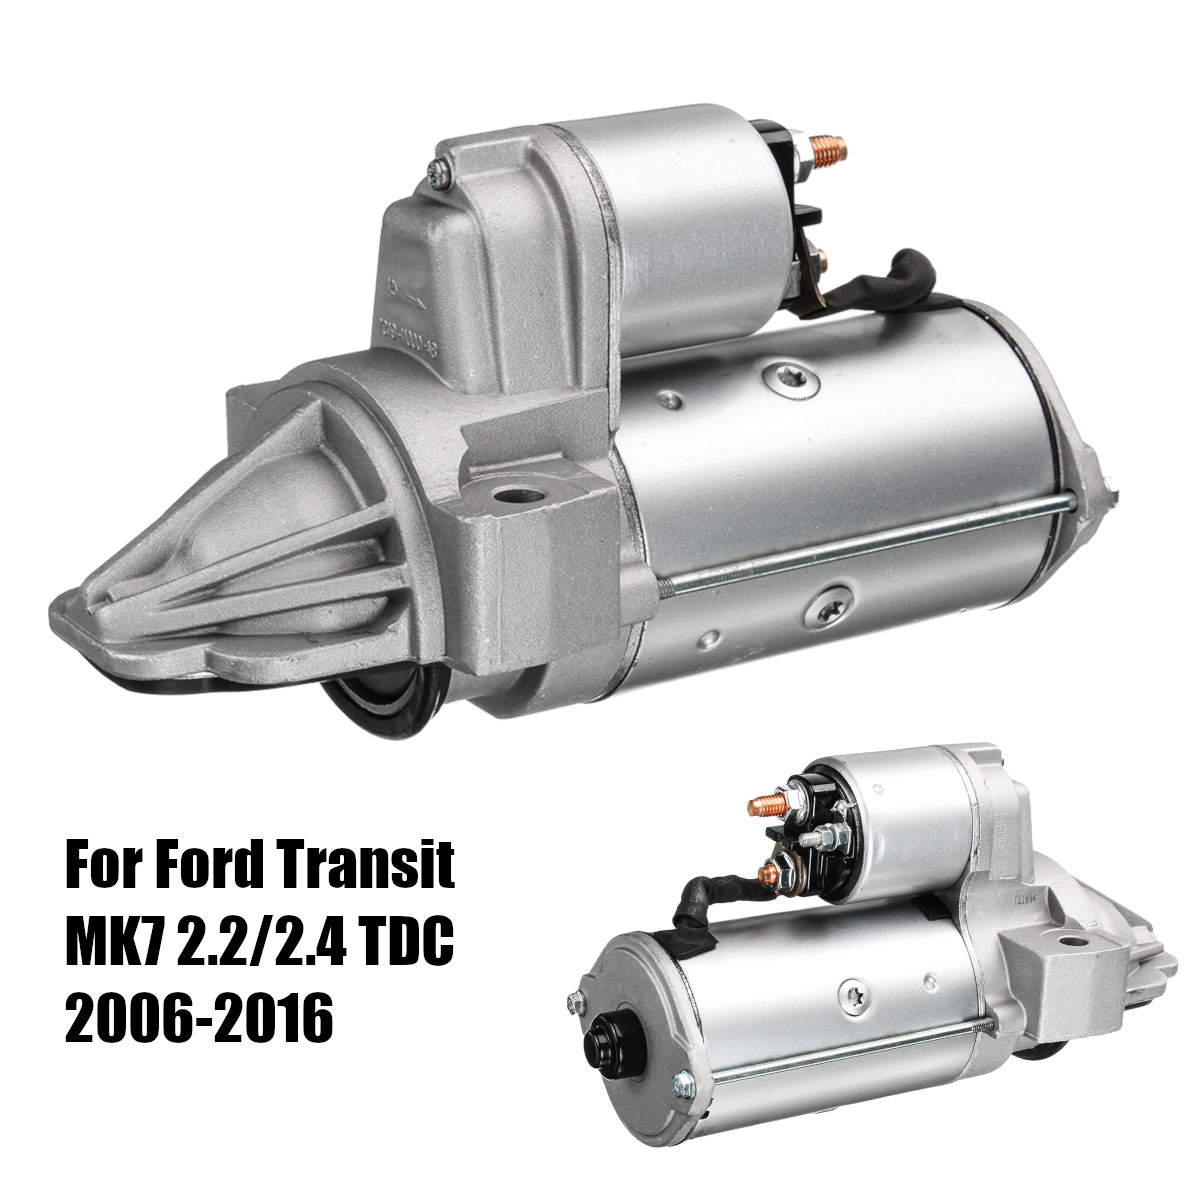 Car Electric Starter Motor 0001109205 0001109305 For FORD TRANSIT MK7 2.2/2.4 TDC 2006-2016 dpx 2 s zs 14 vibration eco friendly transit 72v3000w electric horizon large car electric bicycle